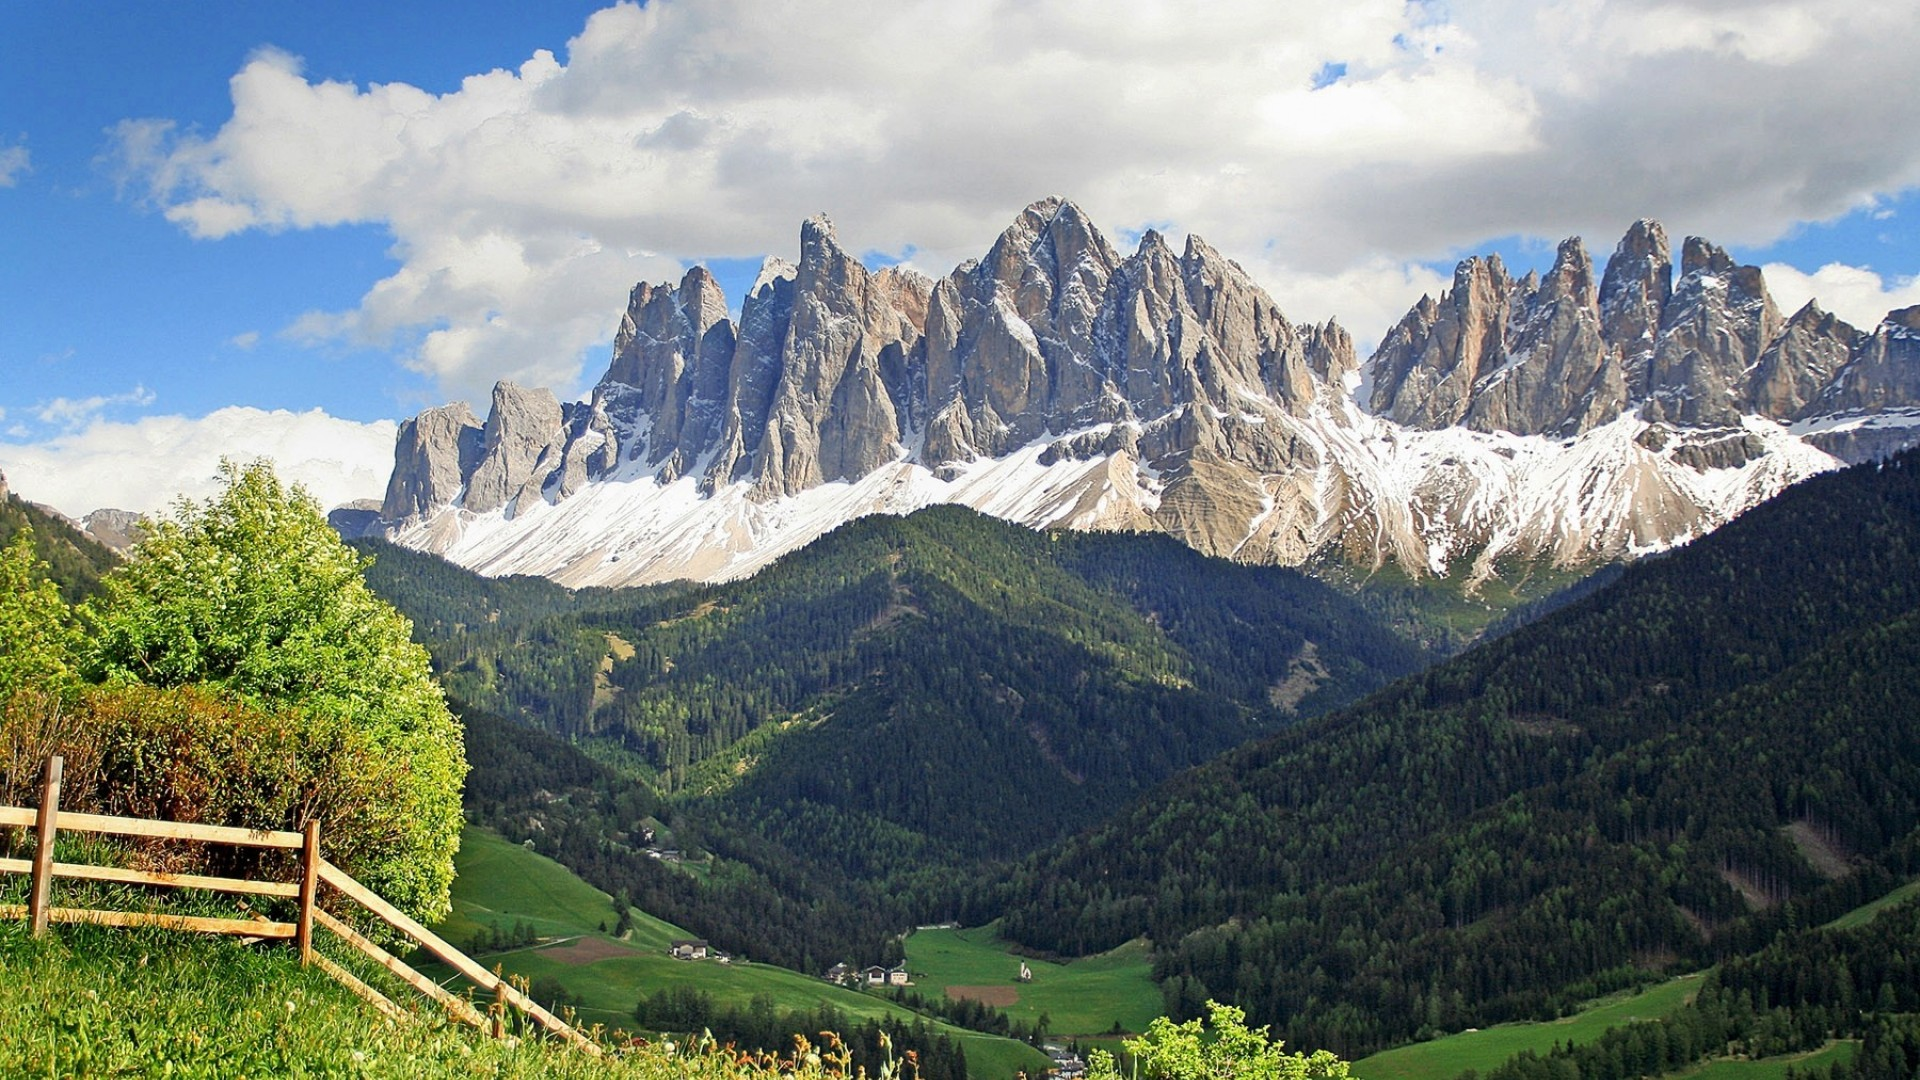 alps_dolomites_italy_unesco_world_heritage_site_blue_1920x1080_62918